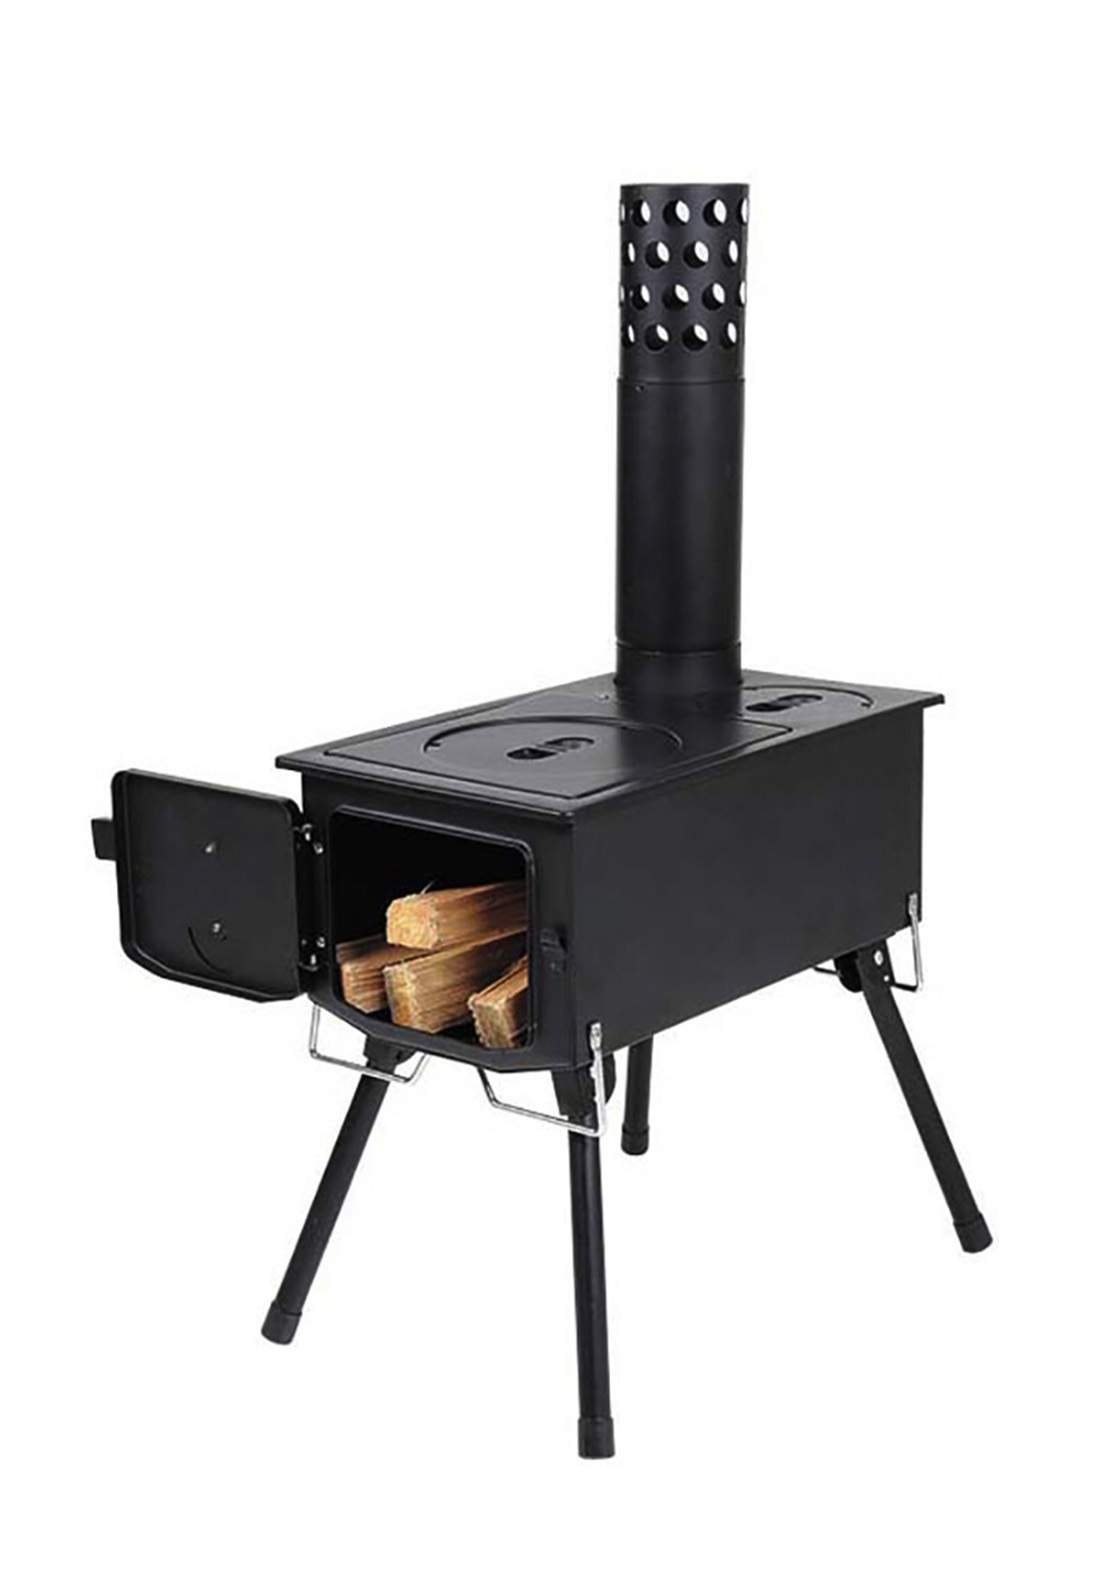 Captain Stag   UG-0051  Deer Iron Outdoor Wood StovePower Stove Camping Picnic Leisure Outdoor موقد مدخنة كامادو